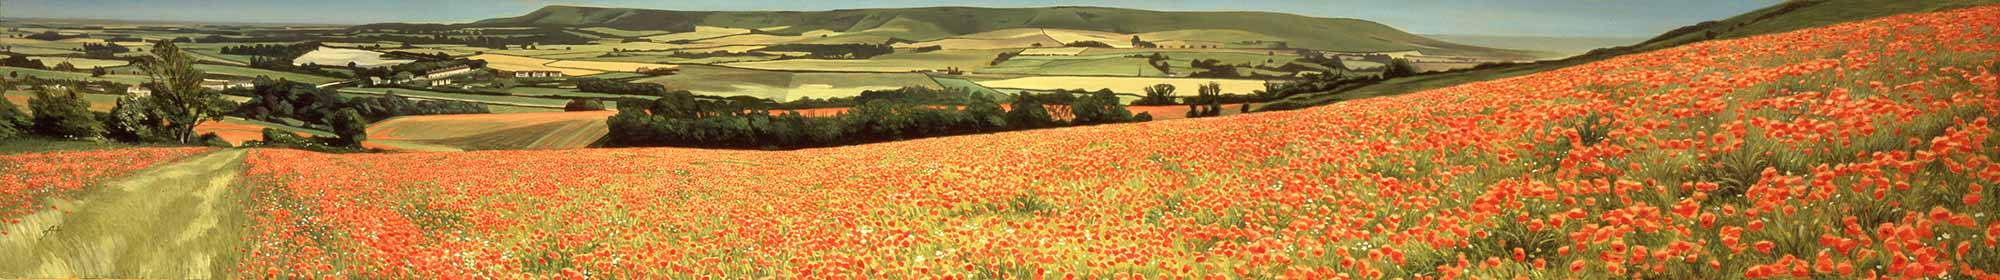 Poppy Field, Glynde, East Sussex, viewed from Mount Caburn, 1992 - original oil on canvas, 213 x 32 cm